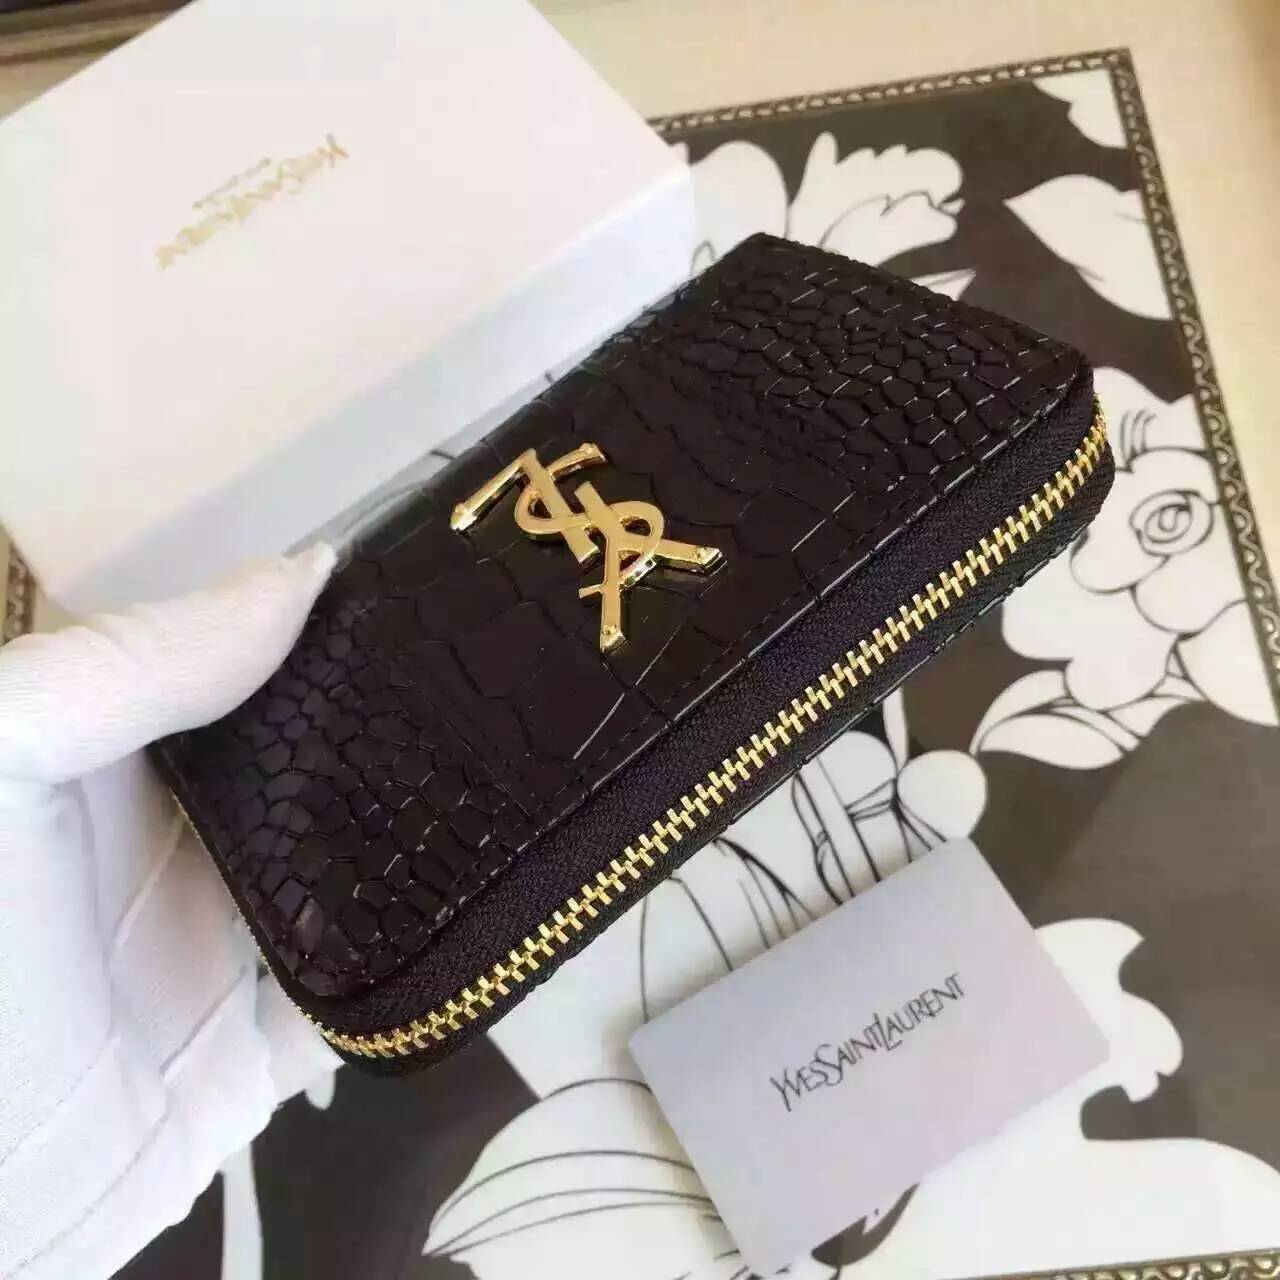 YSL Spring 2016 Collection Outlet-Saint Laurent Small Monogram Zip Around Wallet in Black Crocodile Embossed Leather